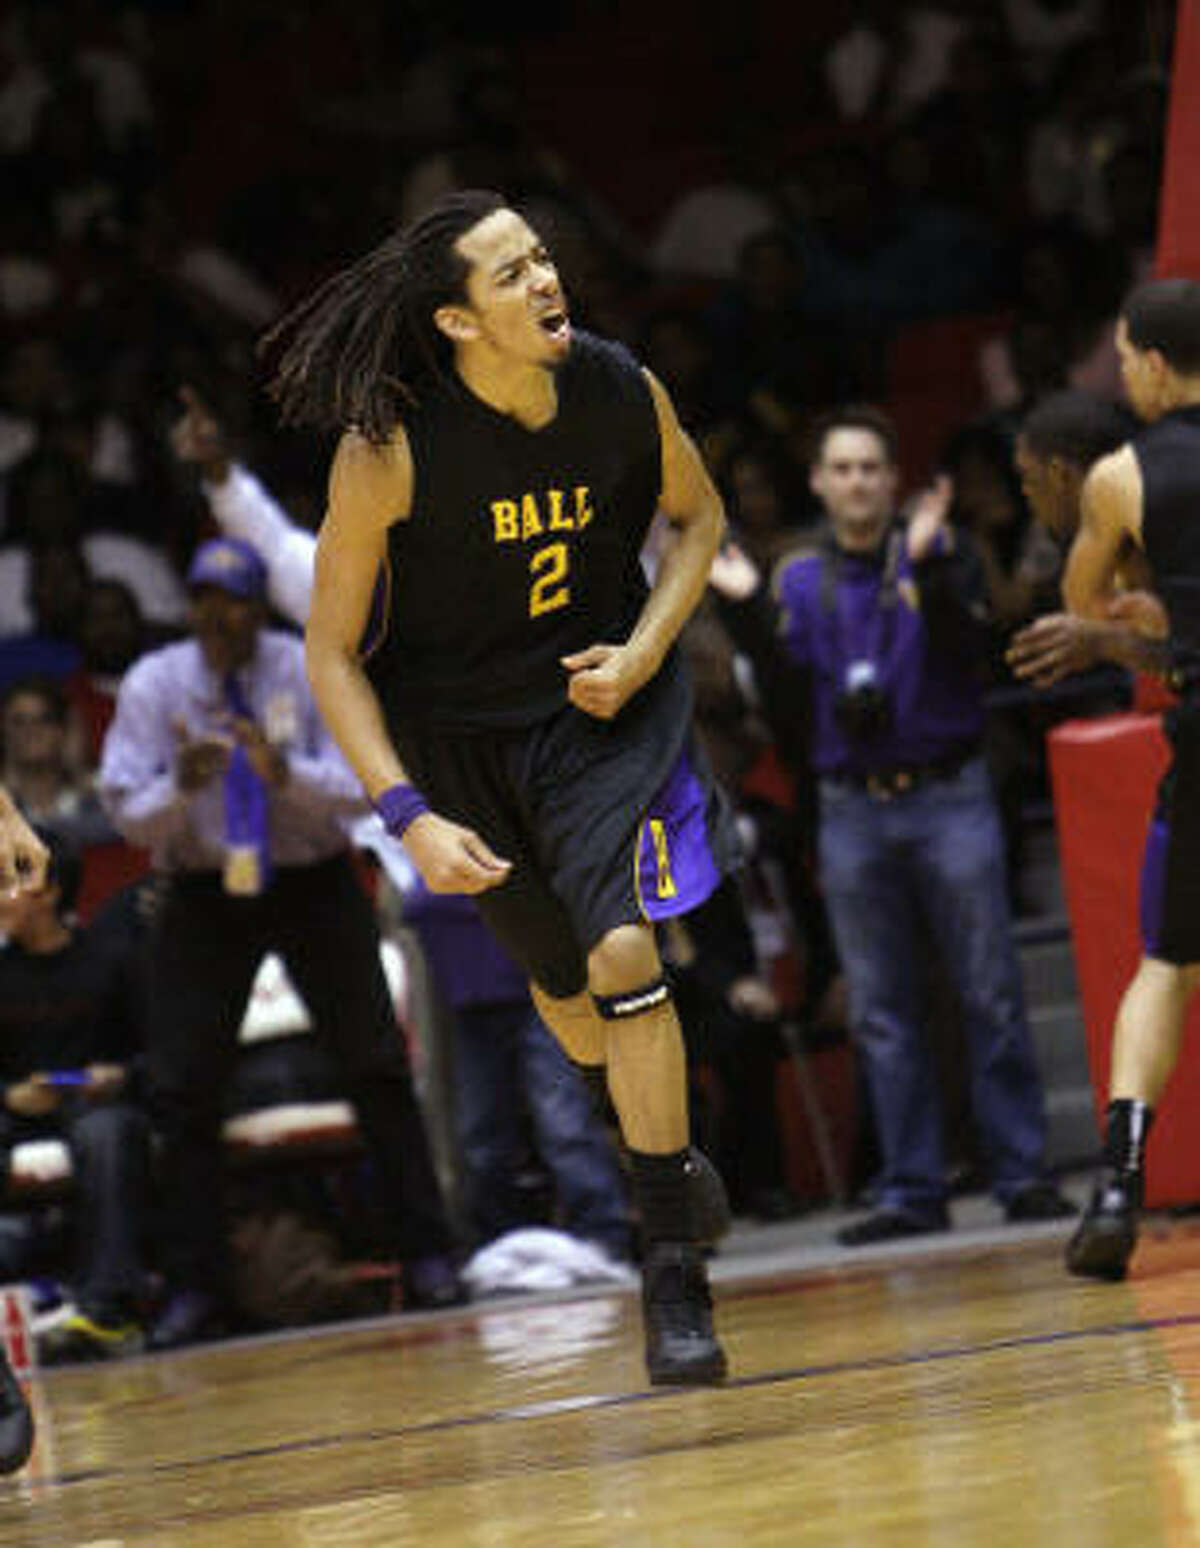 Ball's Terran Petteway celebrates after hitting a shot in the fourth quarter. He finished with 23 points, 12 rebounds and four steals.